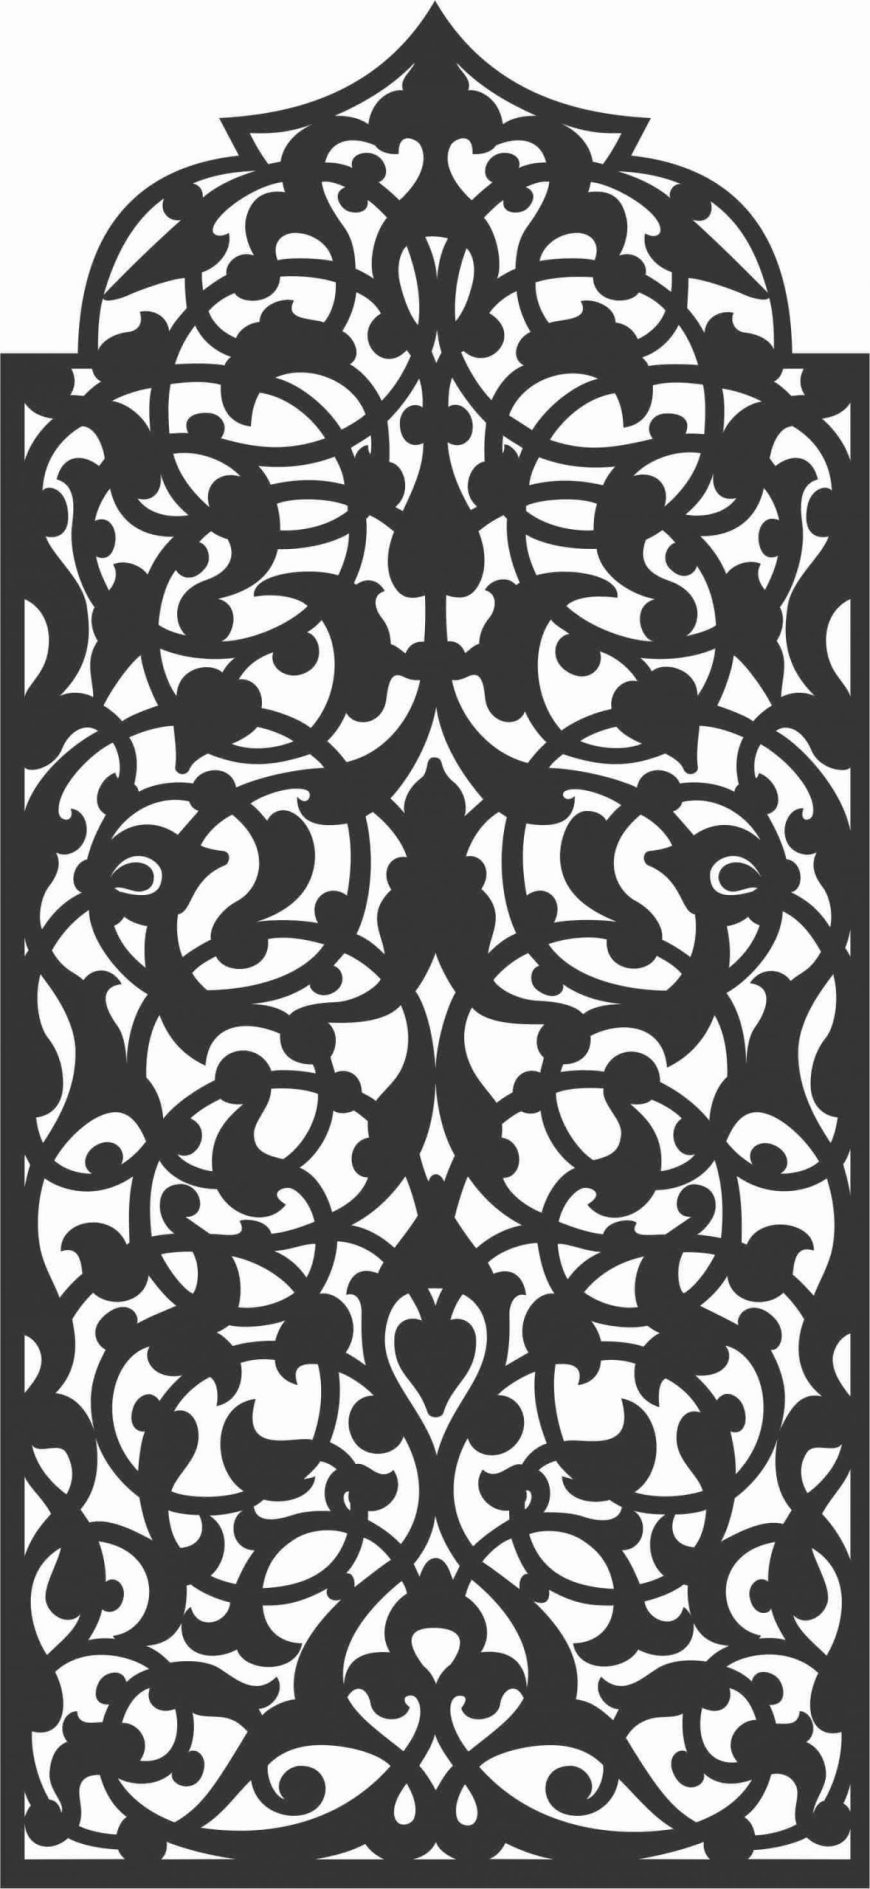 Floral Screen Patterns Design 30 Free DXF File